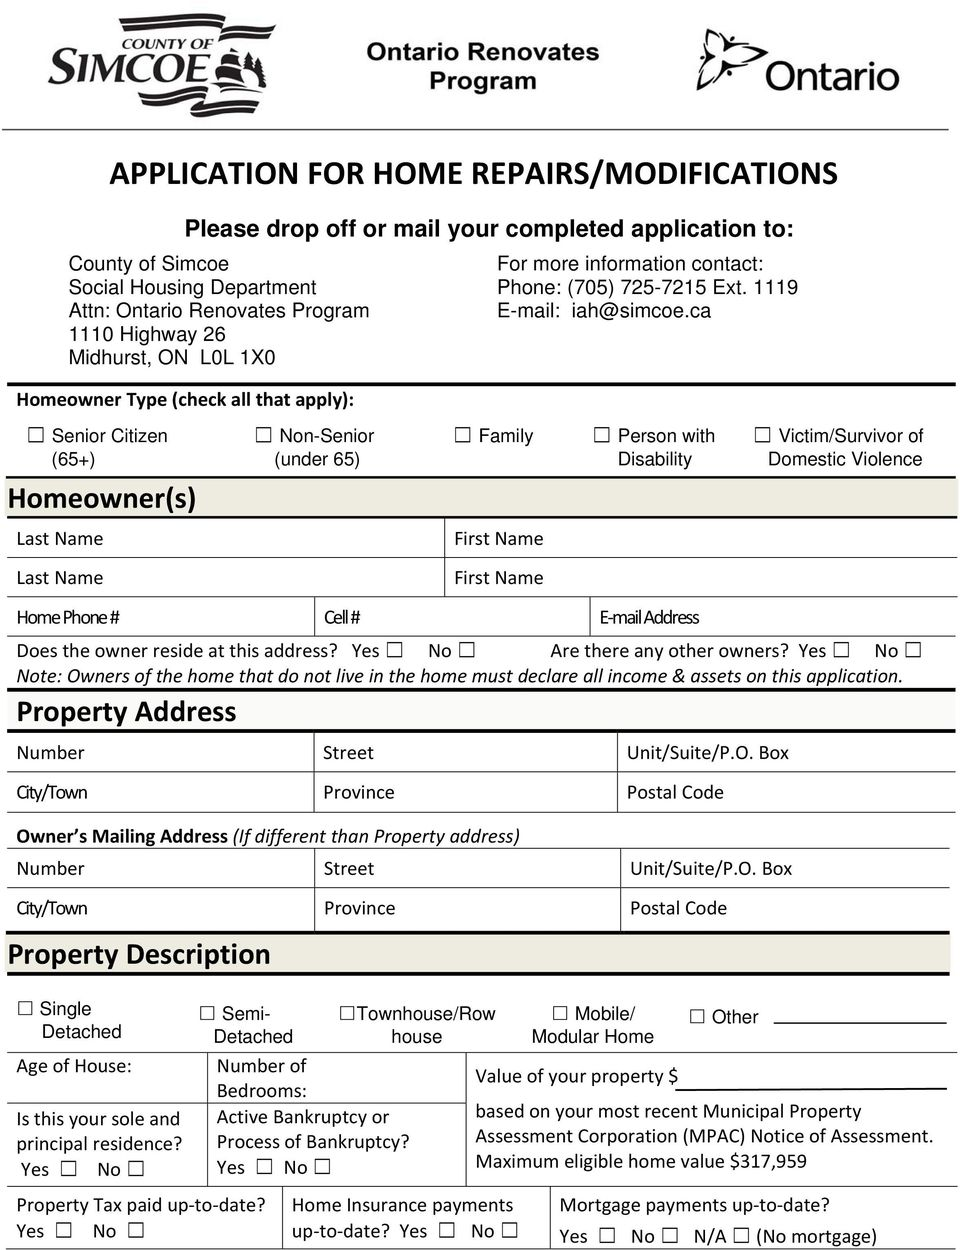 ca 1110 Highway 26 Midhurst, ON L0L 1X0 Homeowner Type (check all that apply): Senior Citizen (65+) Homeowner(s) Non-Senior (under 65) Family Person with Disability Victim/Survivor of Domestic